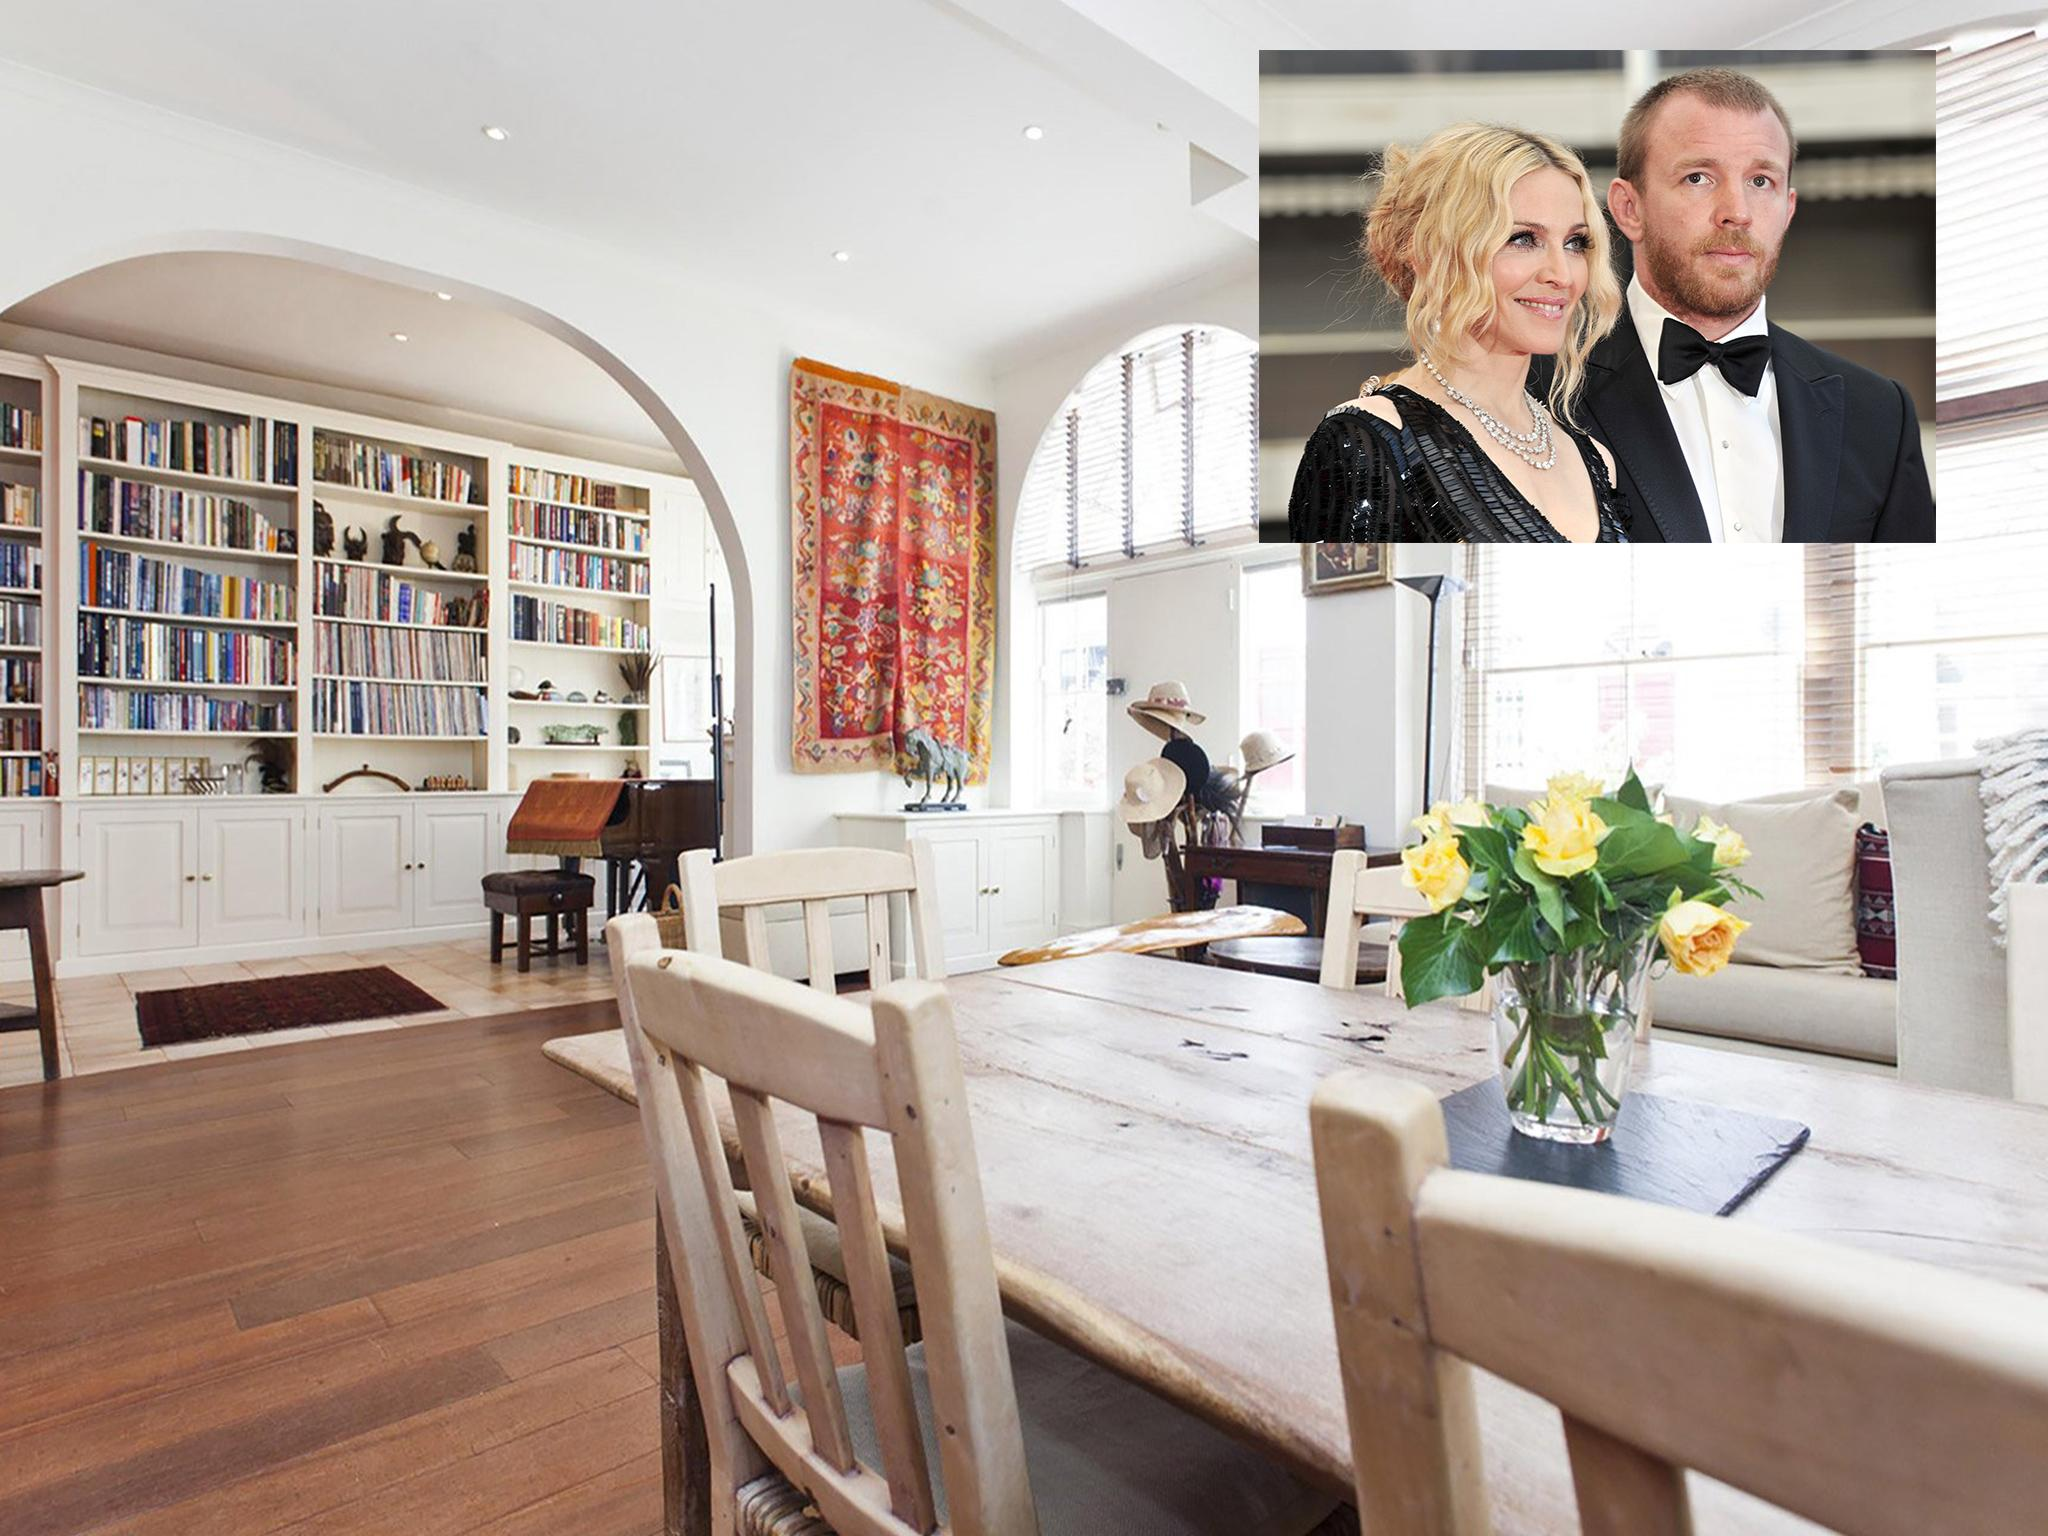 Madonna And Guy Ritchieu0027s Former London Home Available To Rent